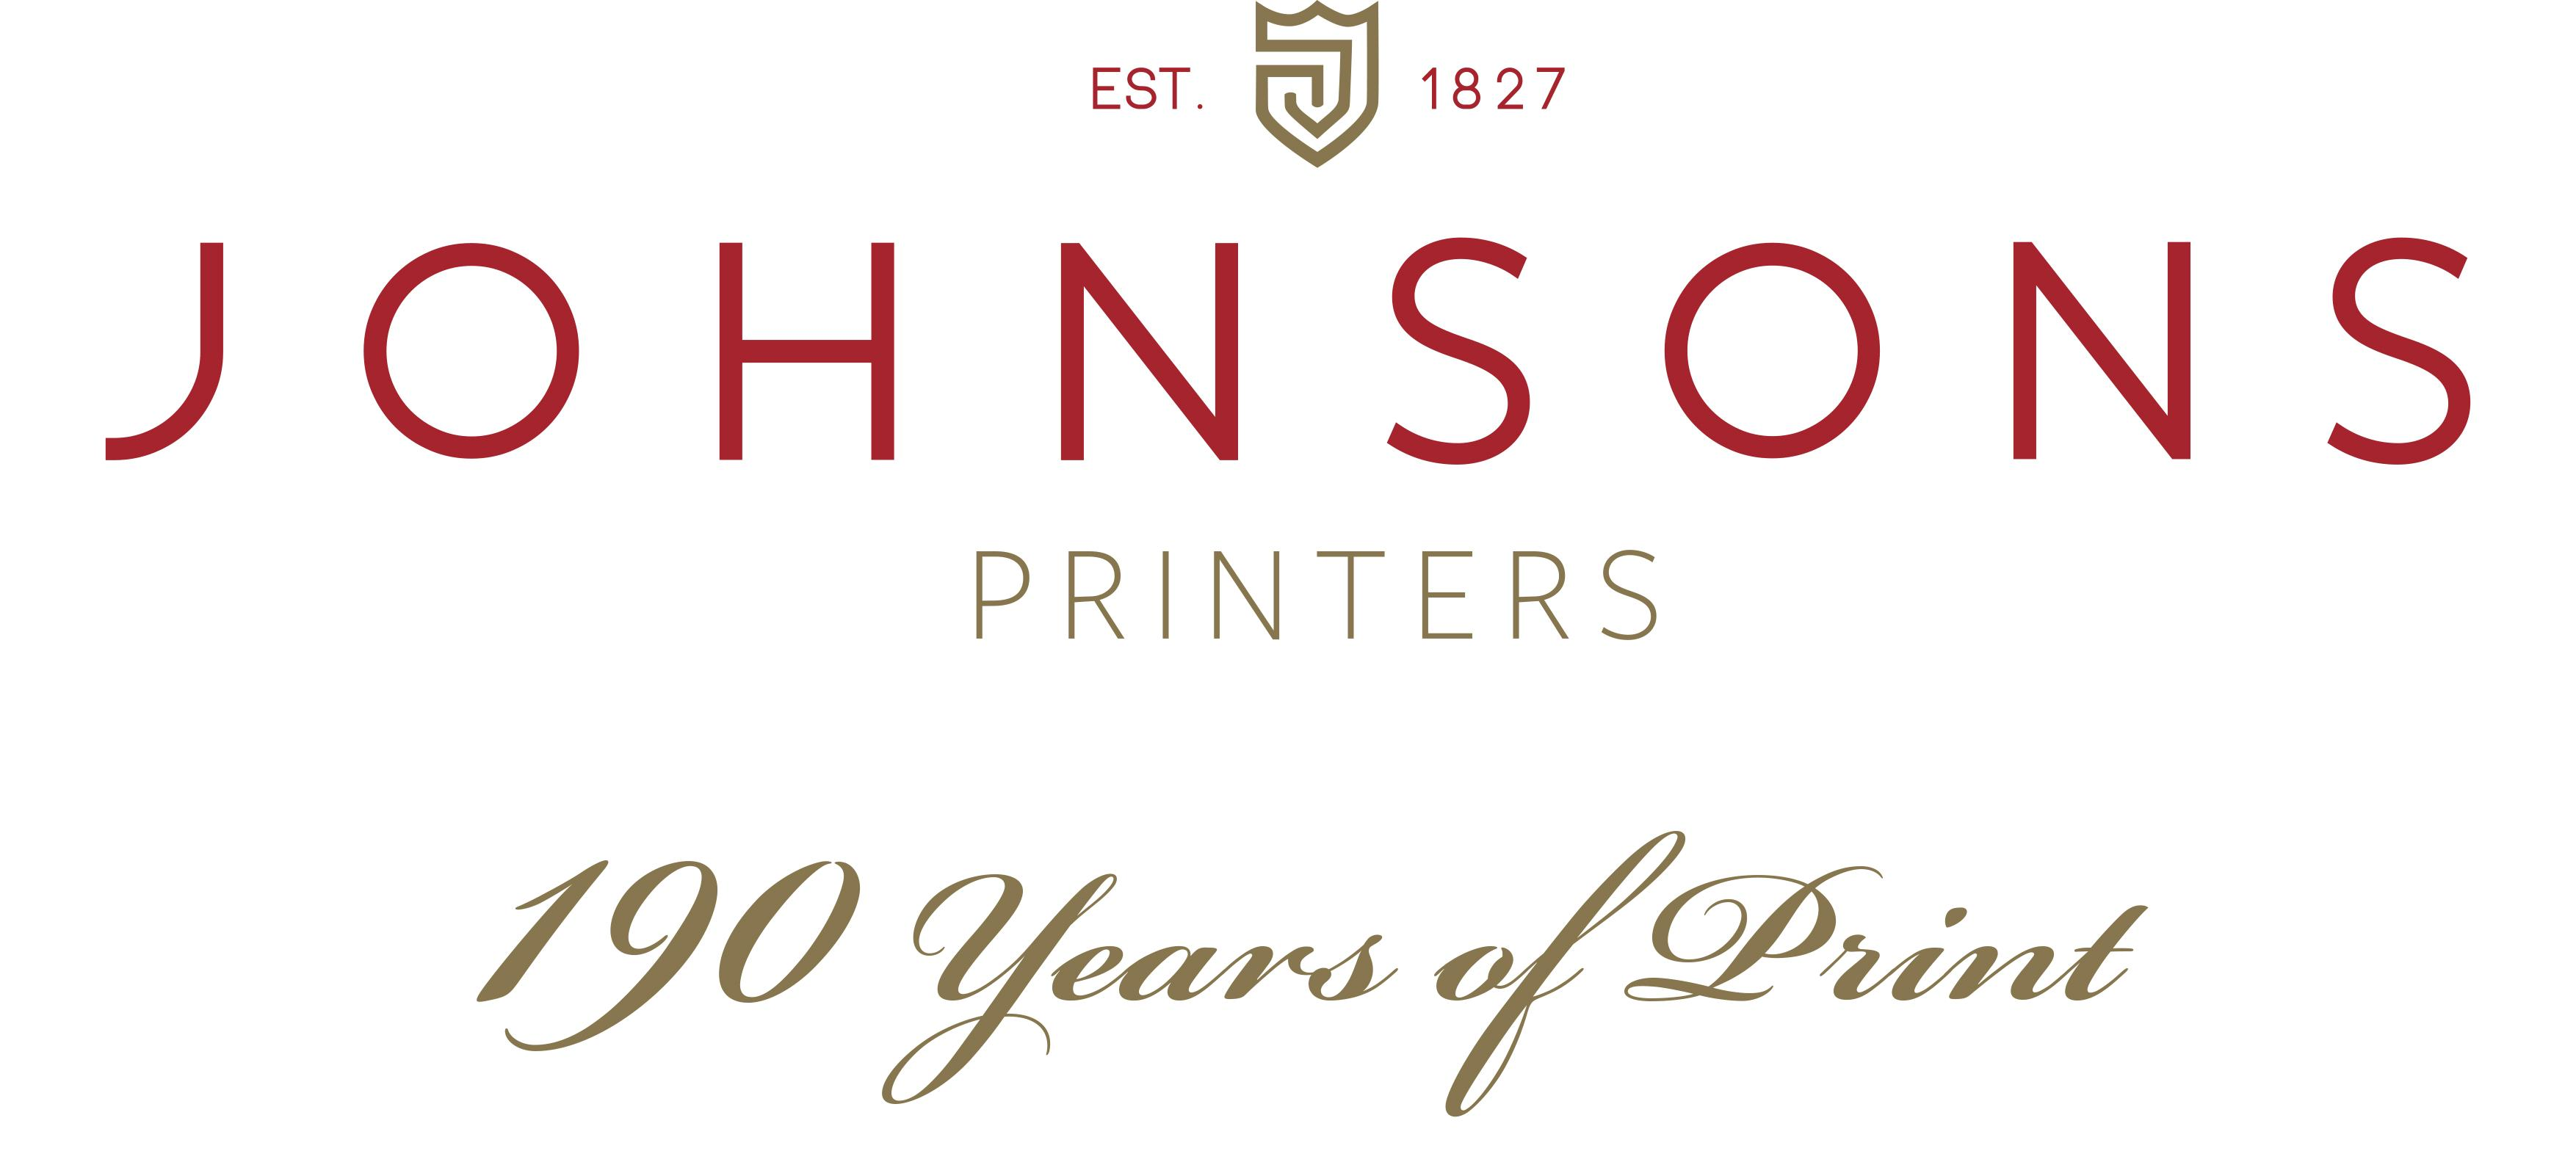 Johnsons Printers